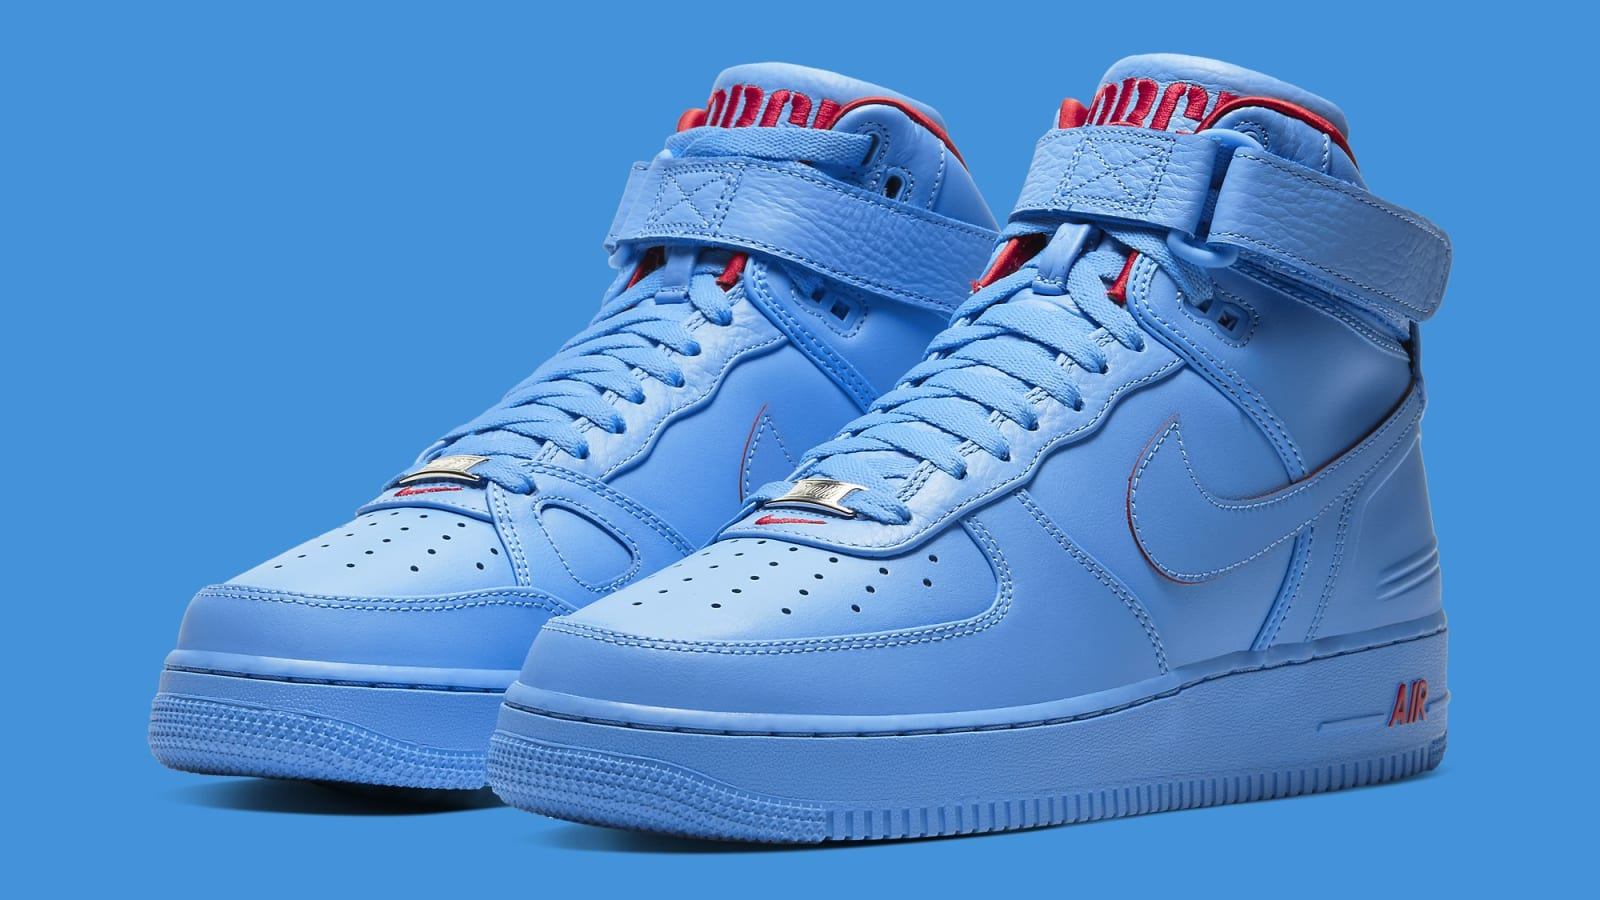 Don C x Nike Air Force 1 High Release Date Revealed: Official Photos